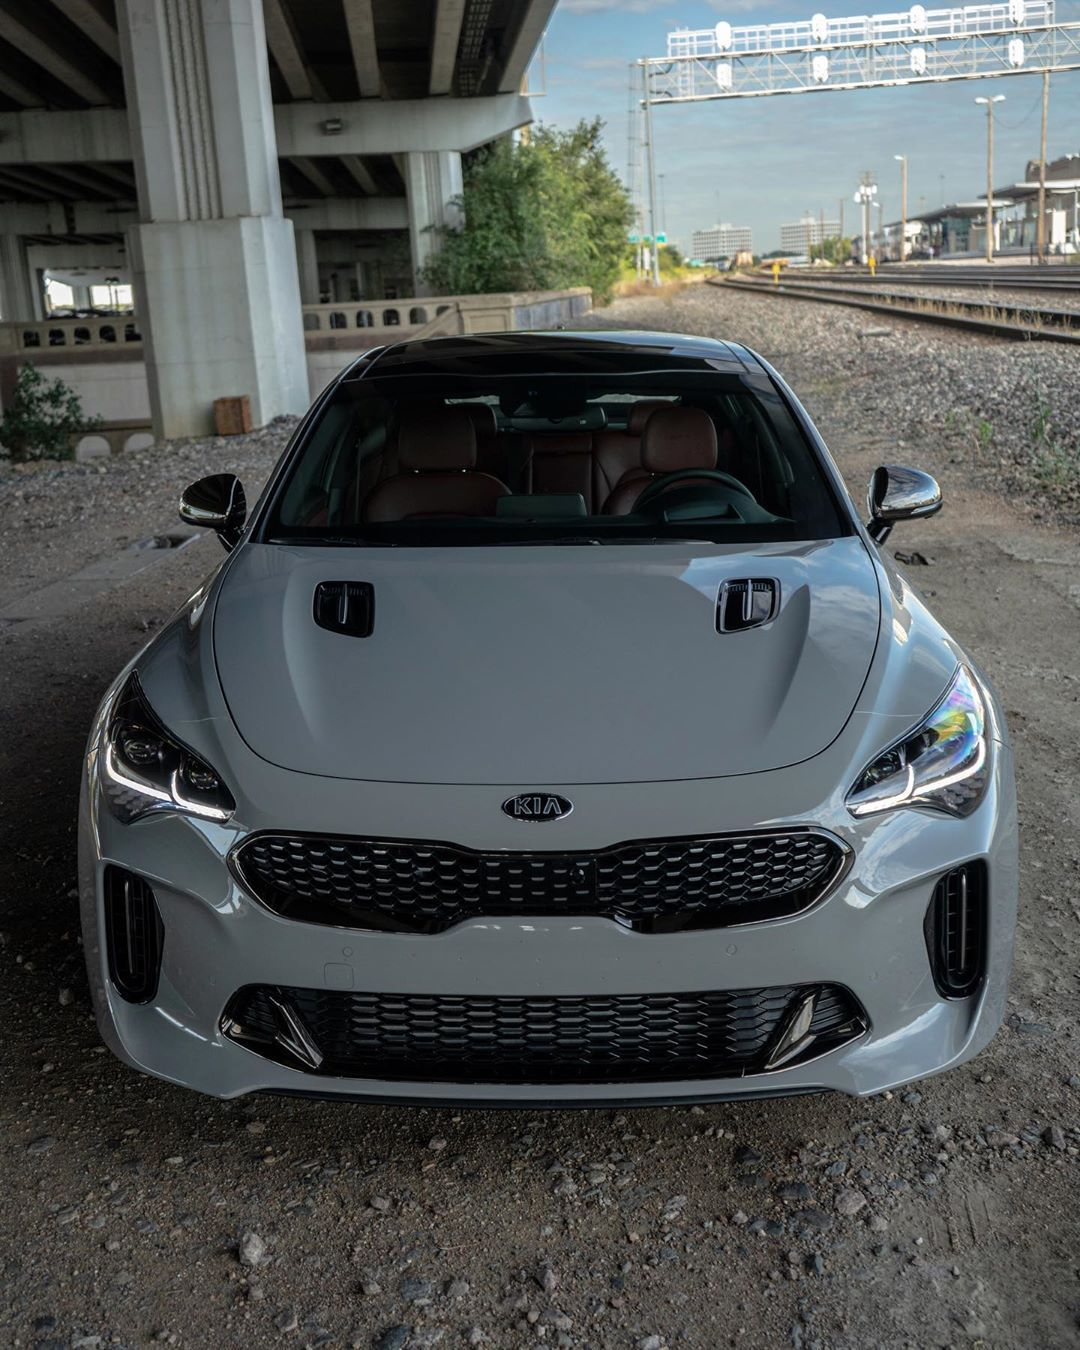 824 Likes 14 Comments Forrest S Auto Reviews Forrestsautoreviews On Instagram Thanks To Kiamotorsusa For Sending Me Thi Car Review Kia Stinger Stinger